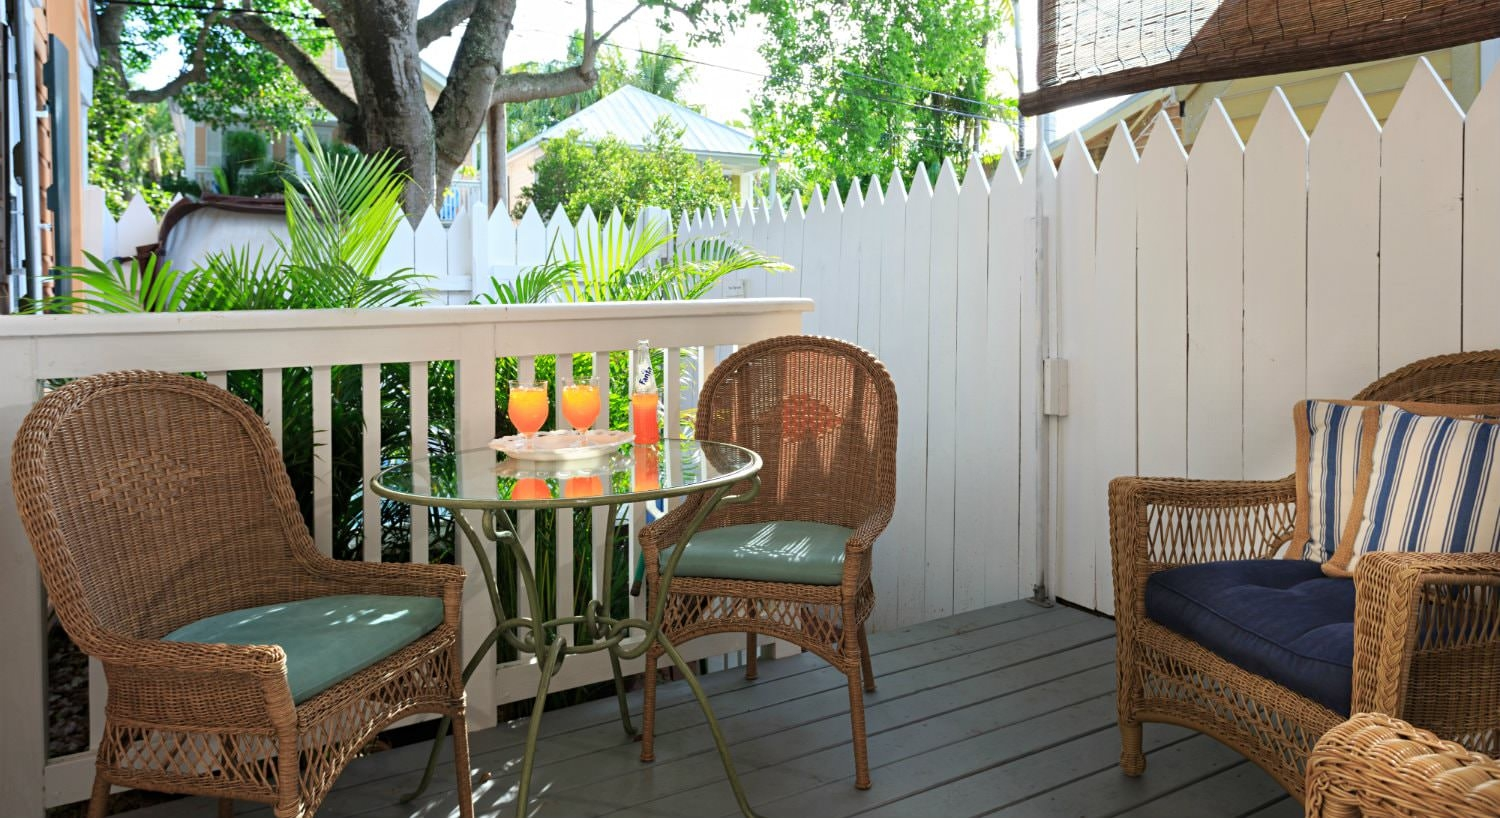 Patio with round glass table with wicker cushioned chairs and wicker chair with blue cushion enclosed by picket fence